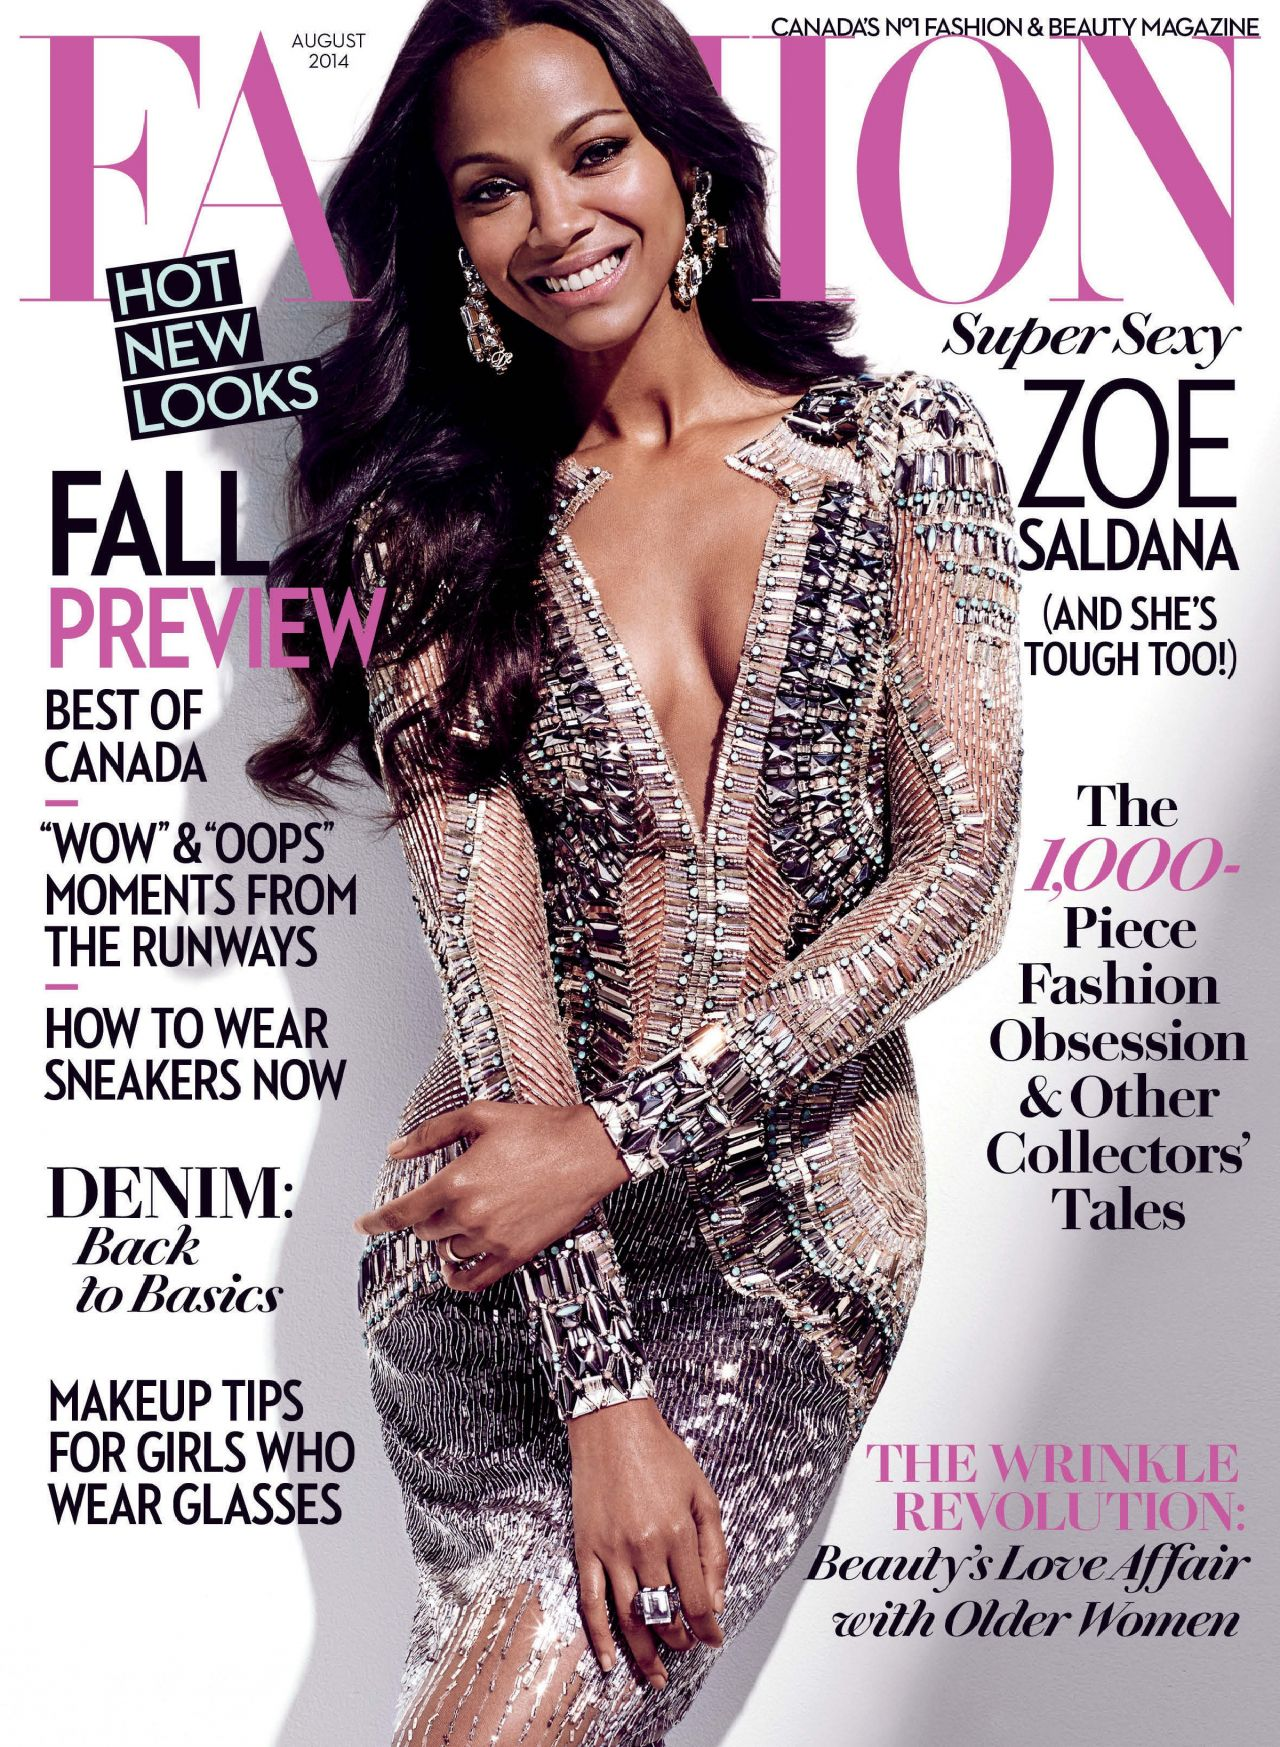 Zoe Saldana - Fashion Magazine (Canada) - August 2014 Cover